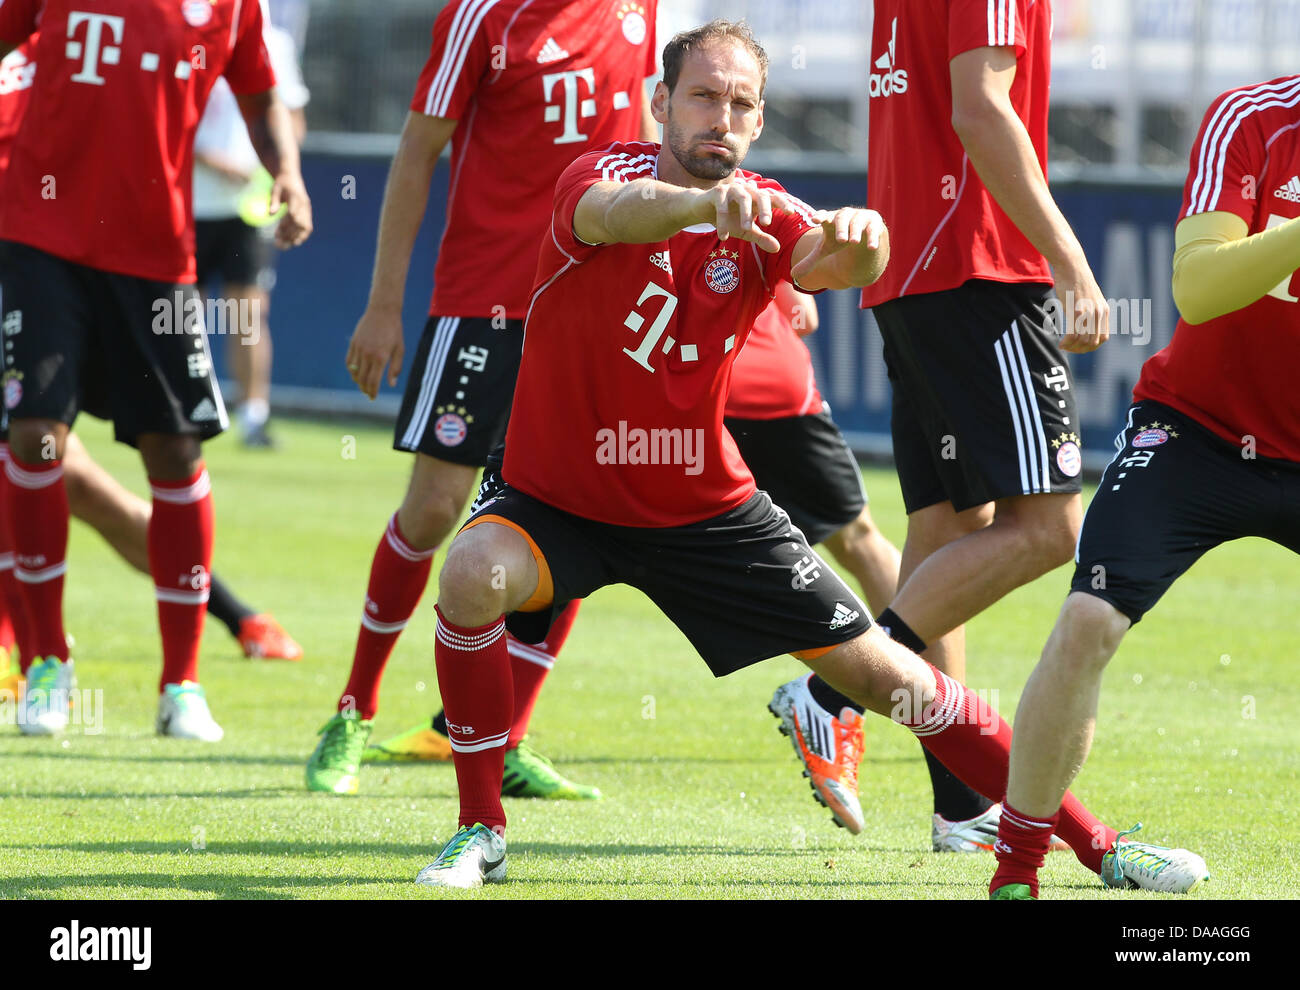 Munich's goalkeepers Tom Starke take part in a training session in Arco, Italy, 09 July 2013. German Bundesliga - Stock Image